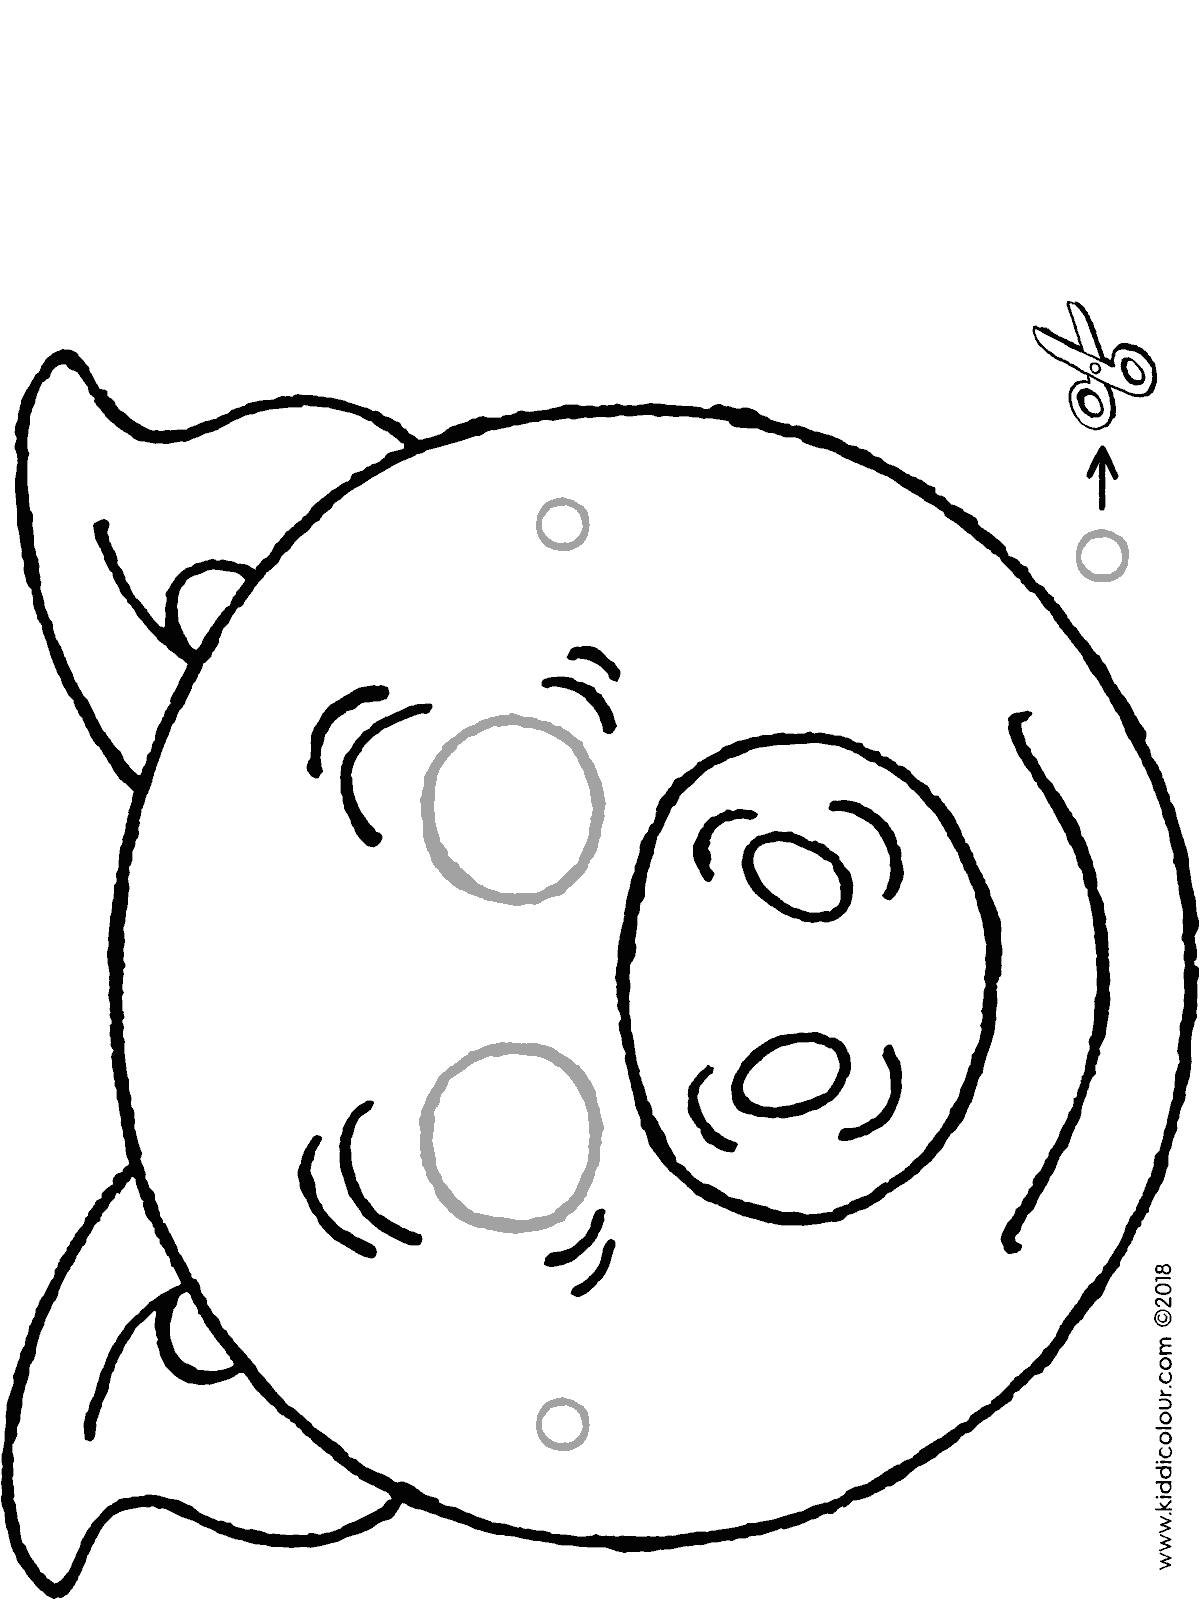 pig mask colouring page drawing picture 01H